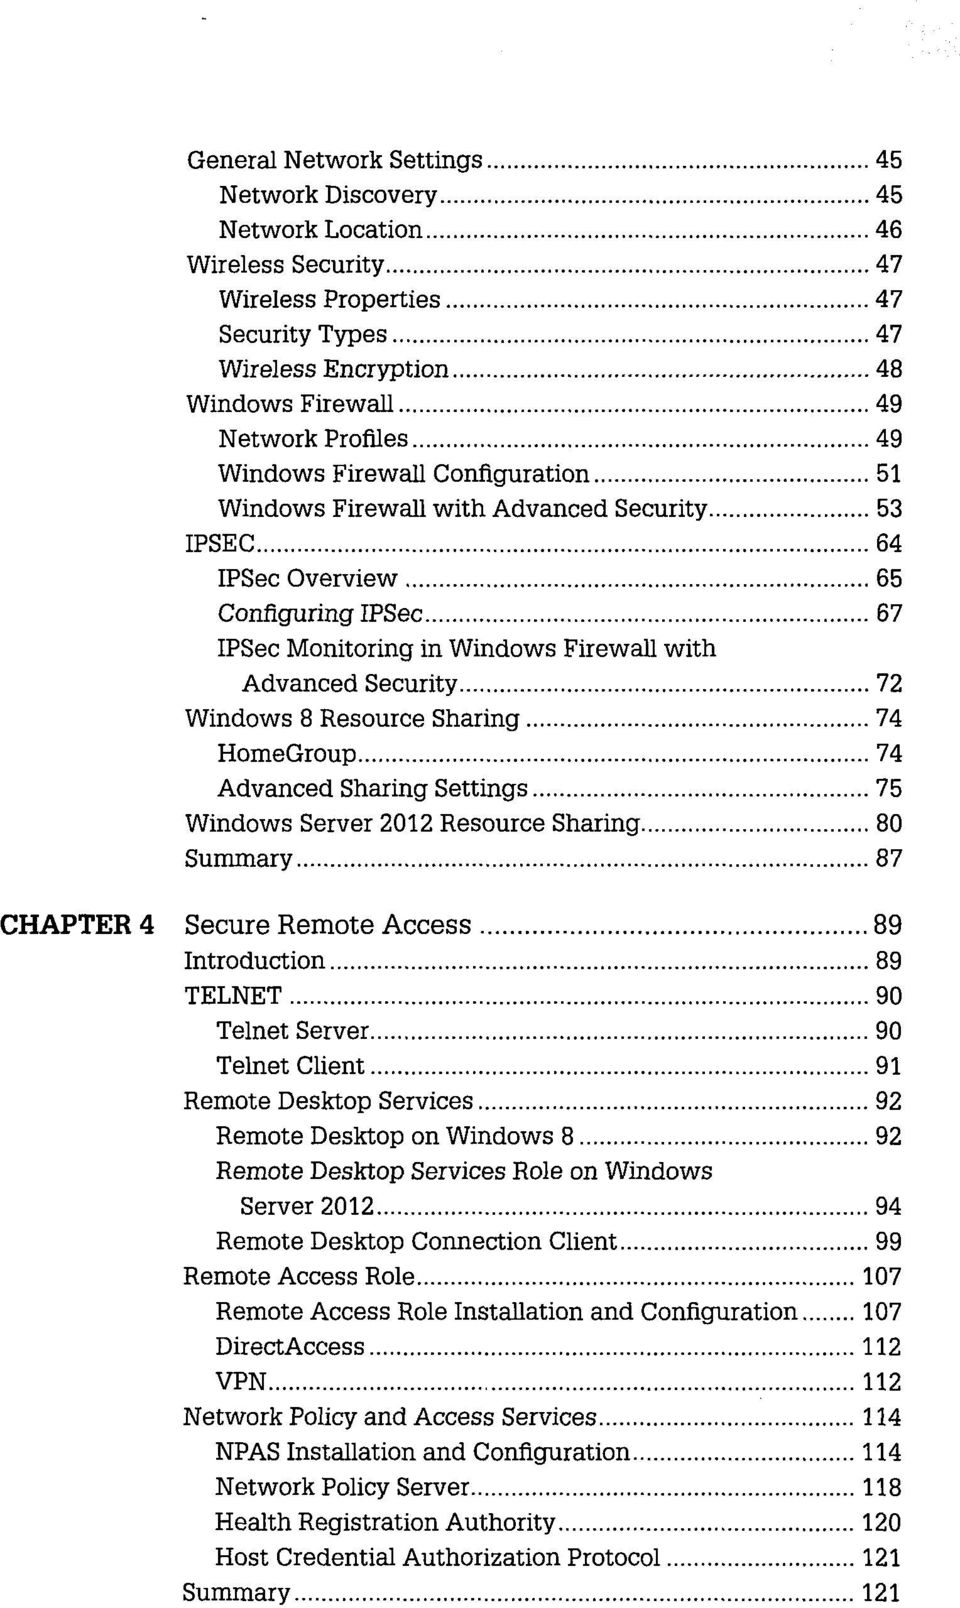 Resource Sharing 74 HomeGroup 74 Advanced Sharing Settings 75 Windows Server 2012 Resource Sharing 80 Summary 87 CHAPTER 4 Secure Remote Access 89 Introduction 89 TELNET 90 Telnet Server 90 Telnet